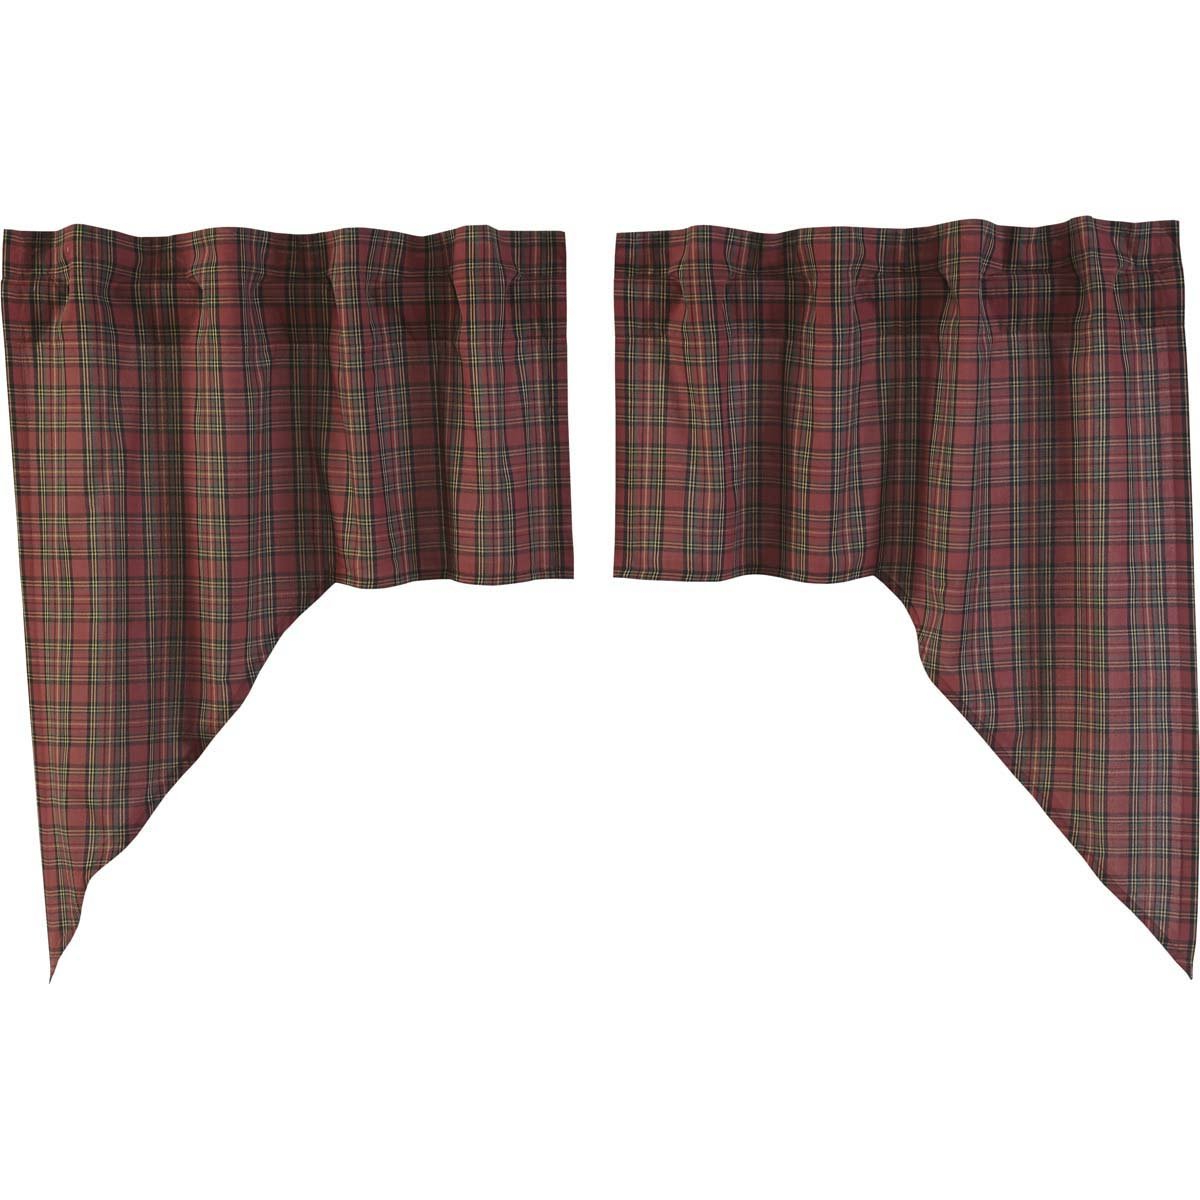 Latest Red Primitive Kitchen Curtains Intended For Amazon: Vhc Brands Primitive Rustic & Lodge Kitchen (Gallery 11 of 20)